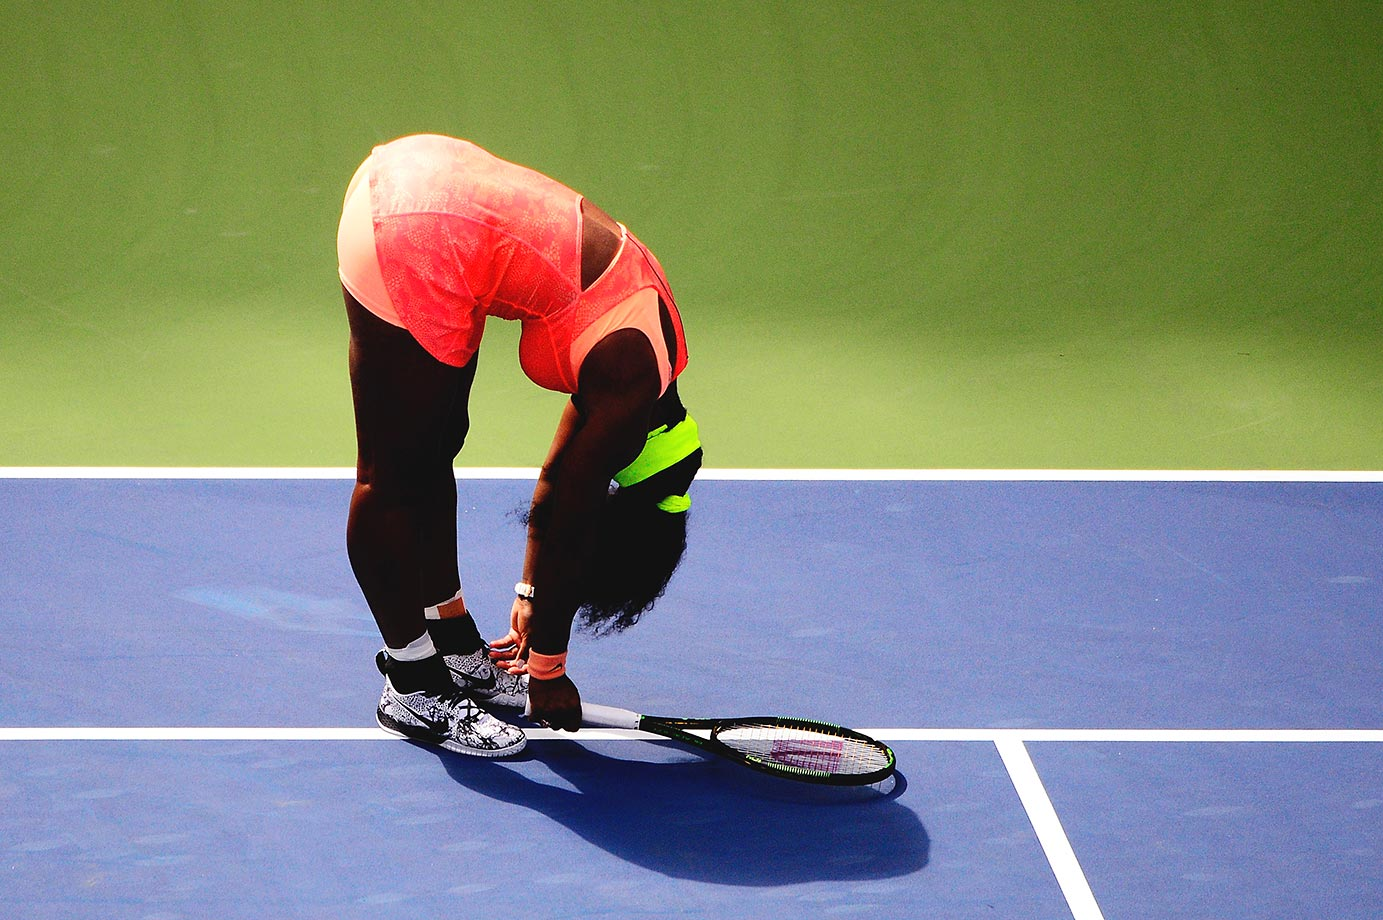 Serena Williams during her match against Roberta Vinci in the semifinals of the U.S. Open.